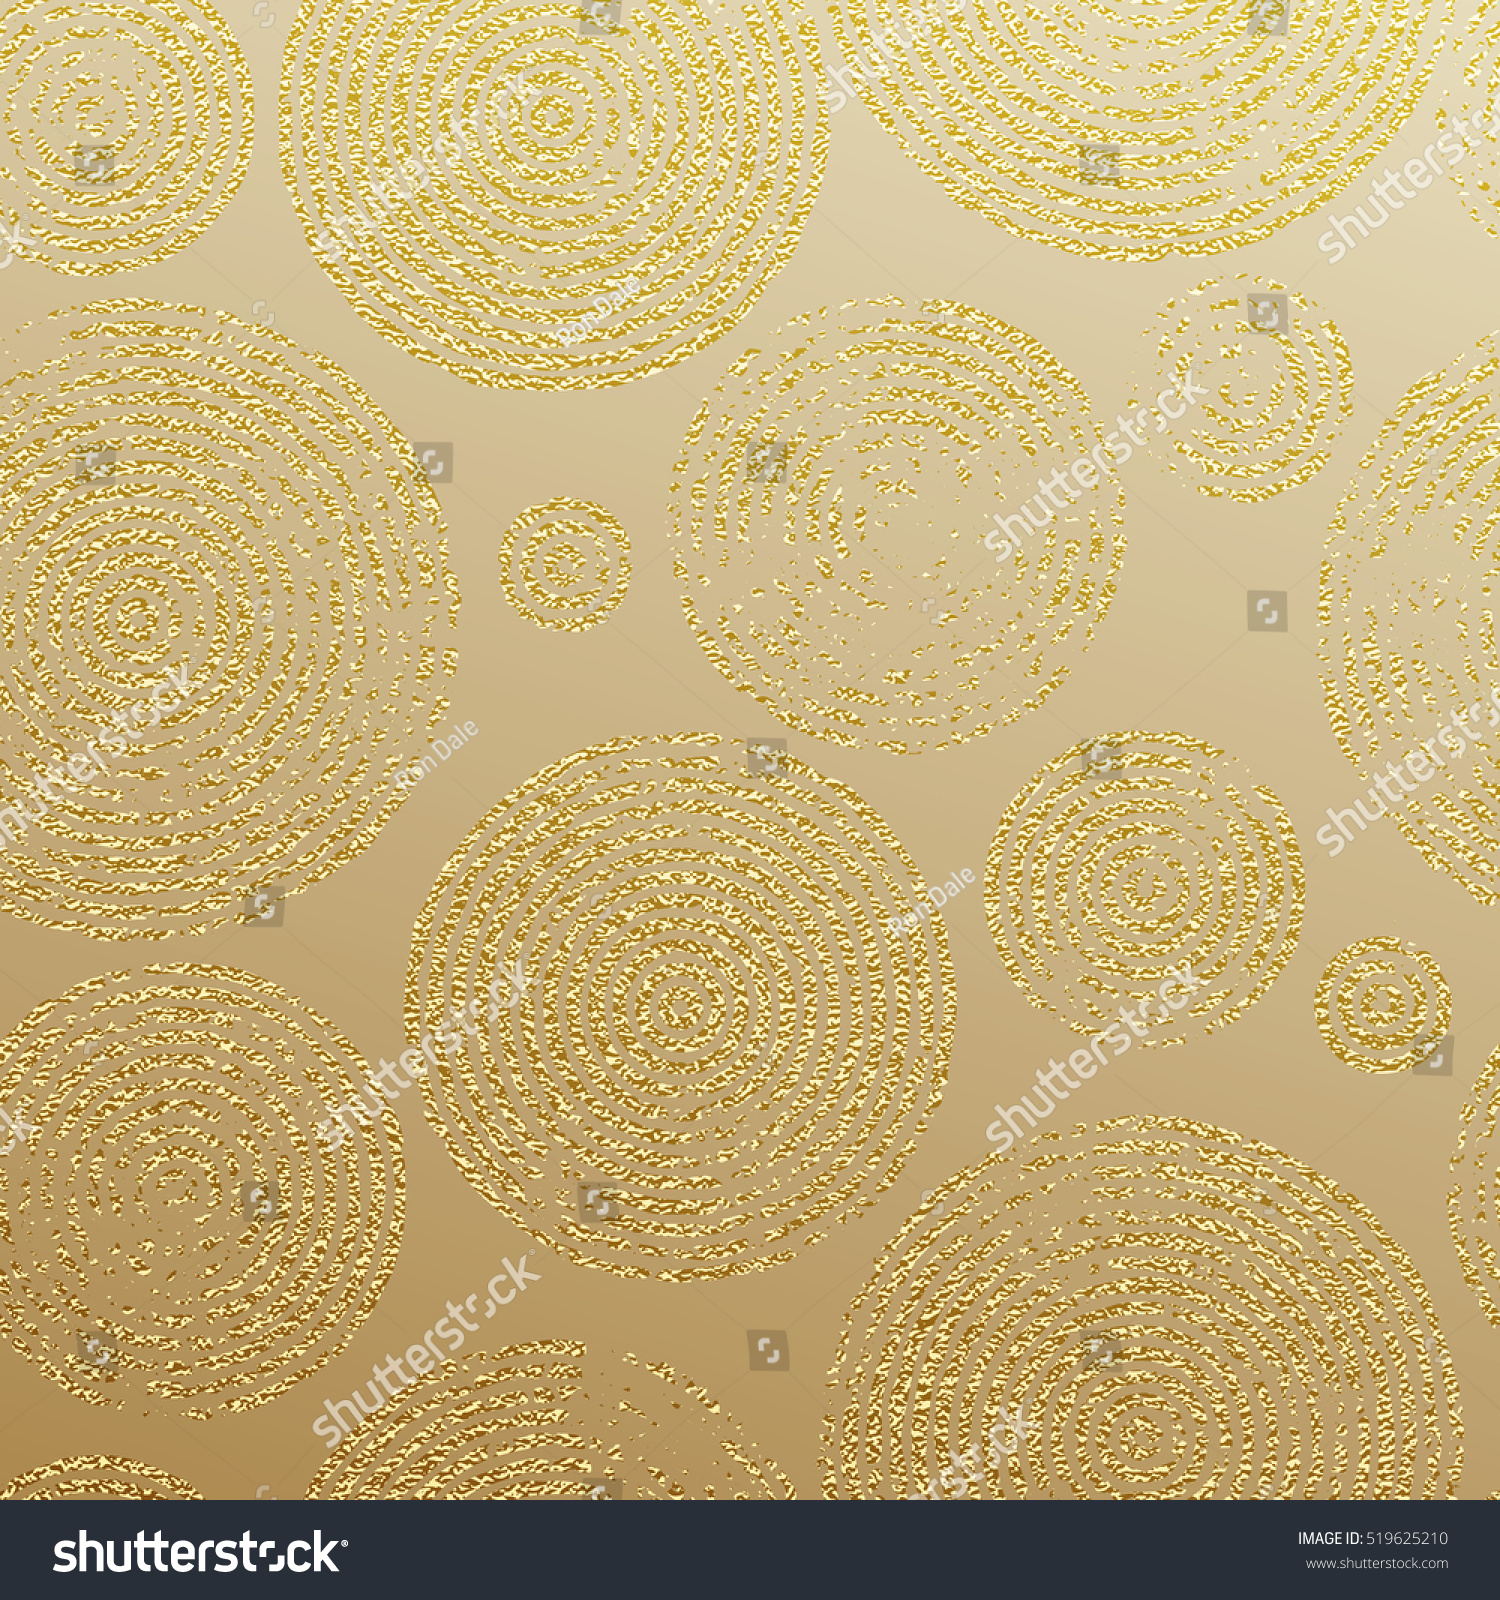 Golden Rings With Gold Glitter Texture Seamless Pattern For Luxury Modern Interior Wallpaper Tile